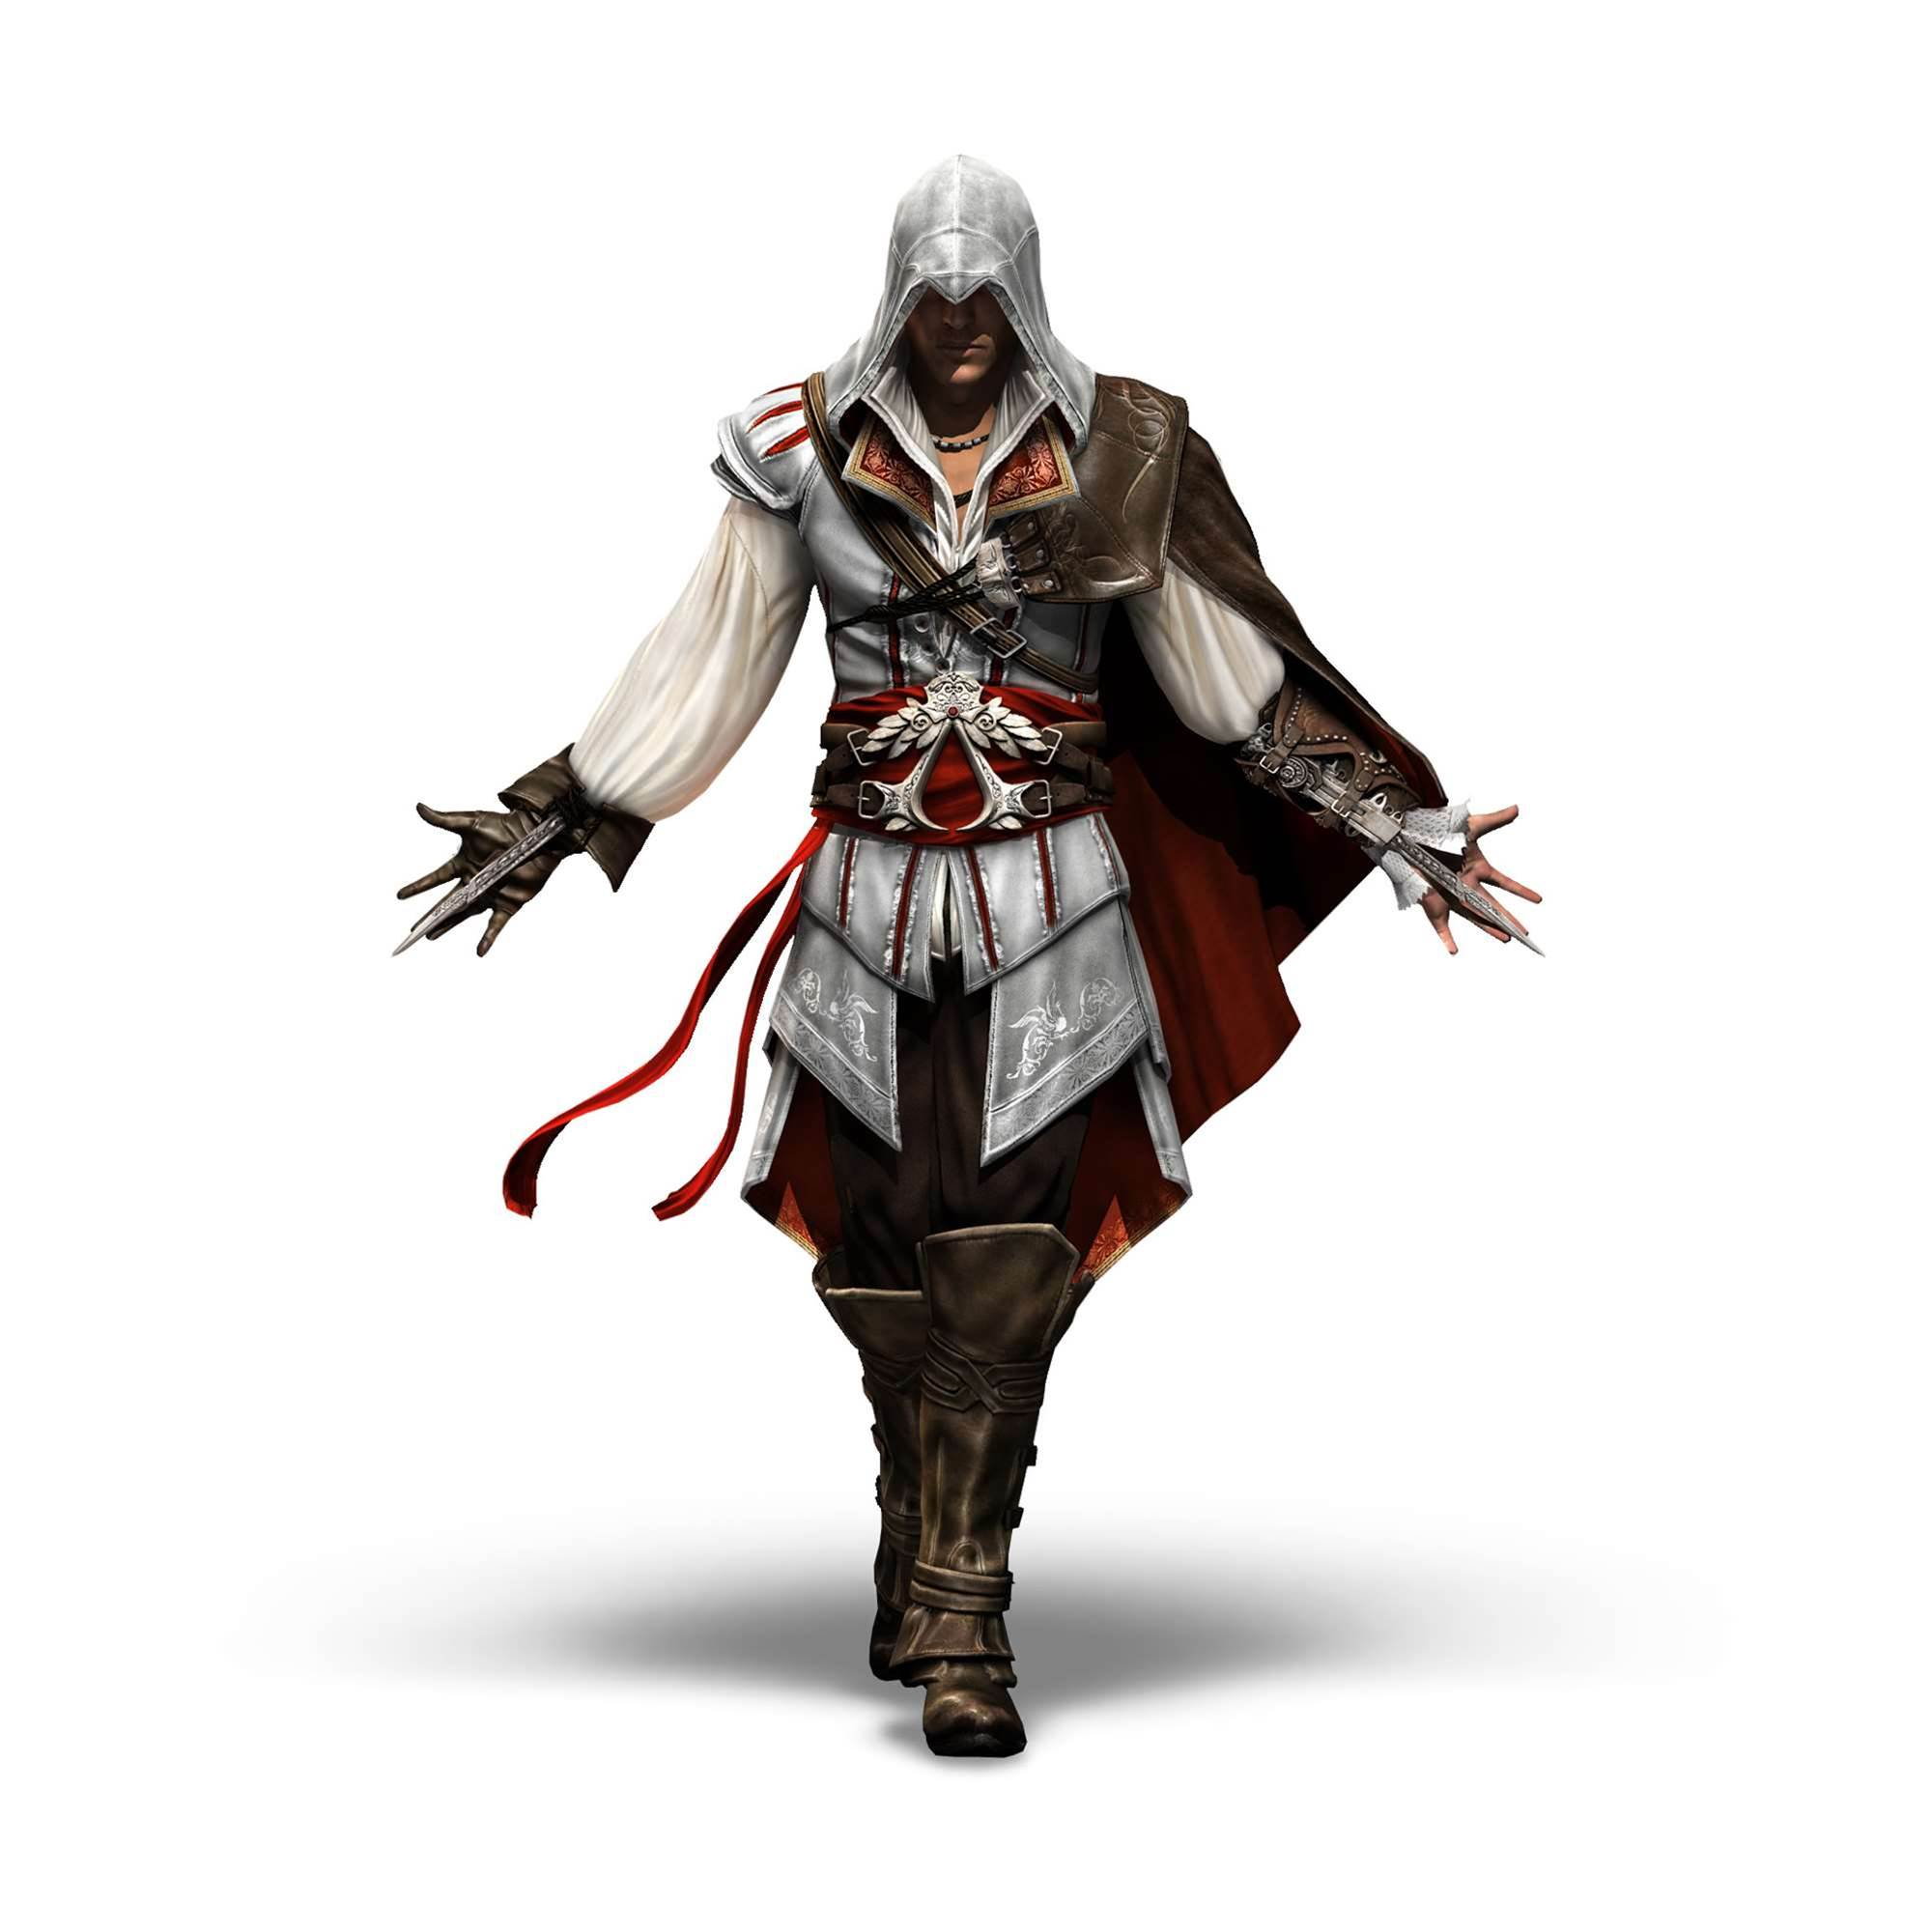 Assassin's Creed 2 coming this year